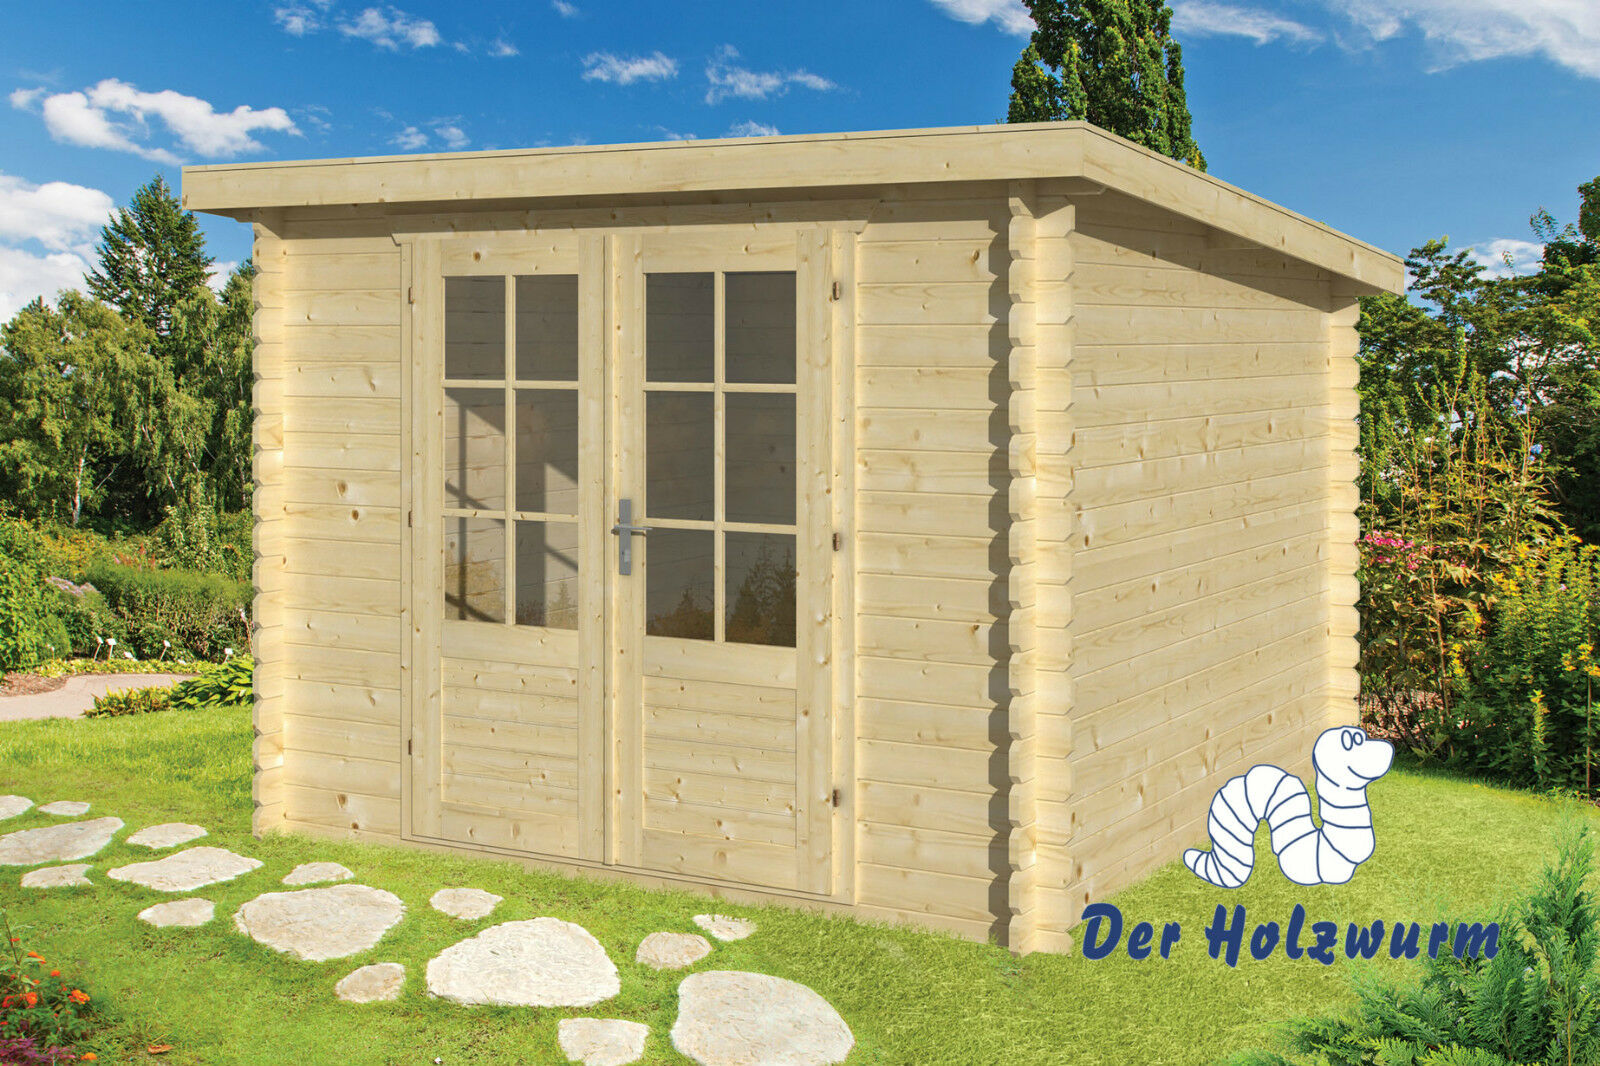 gartenhaus j rgen blockhaus 290x290 cm ger tehaus holzhaus 28 mm holz schuppen ebay. Black Bedroom Furniture Sets. Home Design Ideas